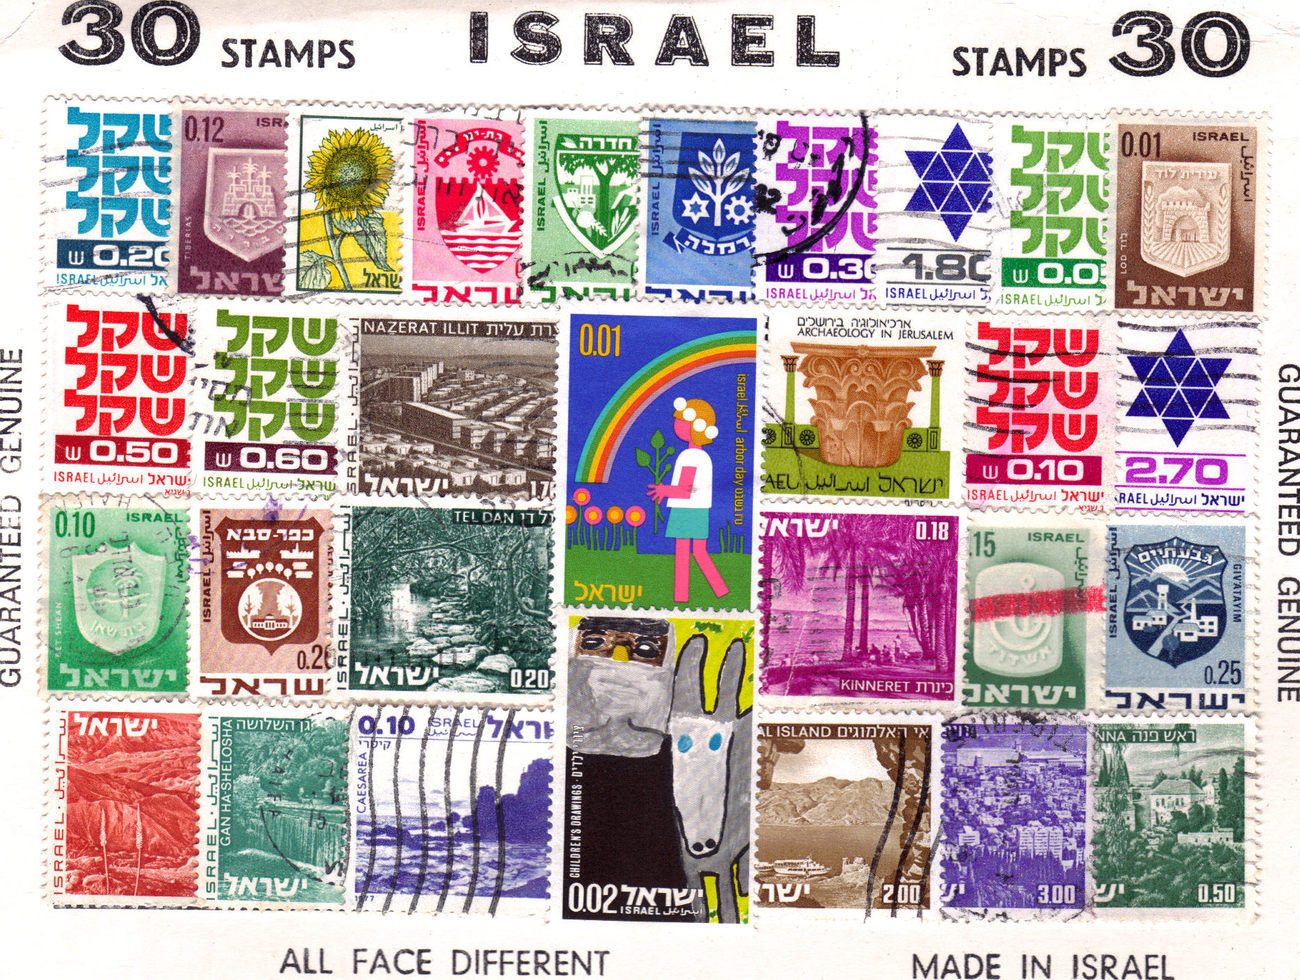 ISRAEL 30 Stamps Sheet, Genuine All Face Different